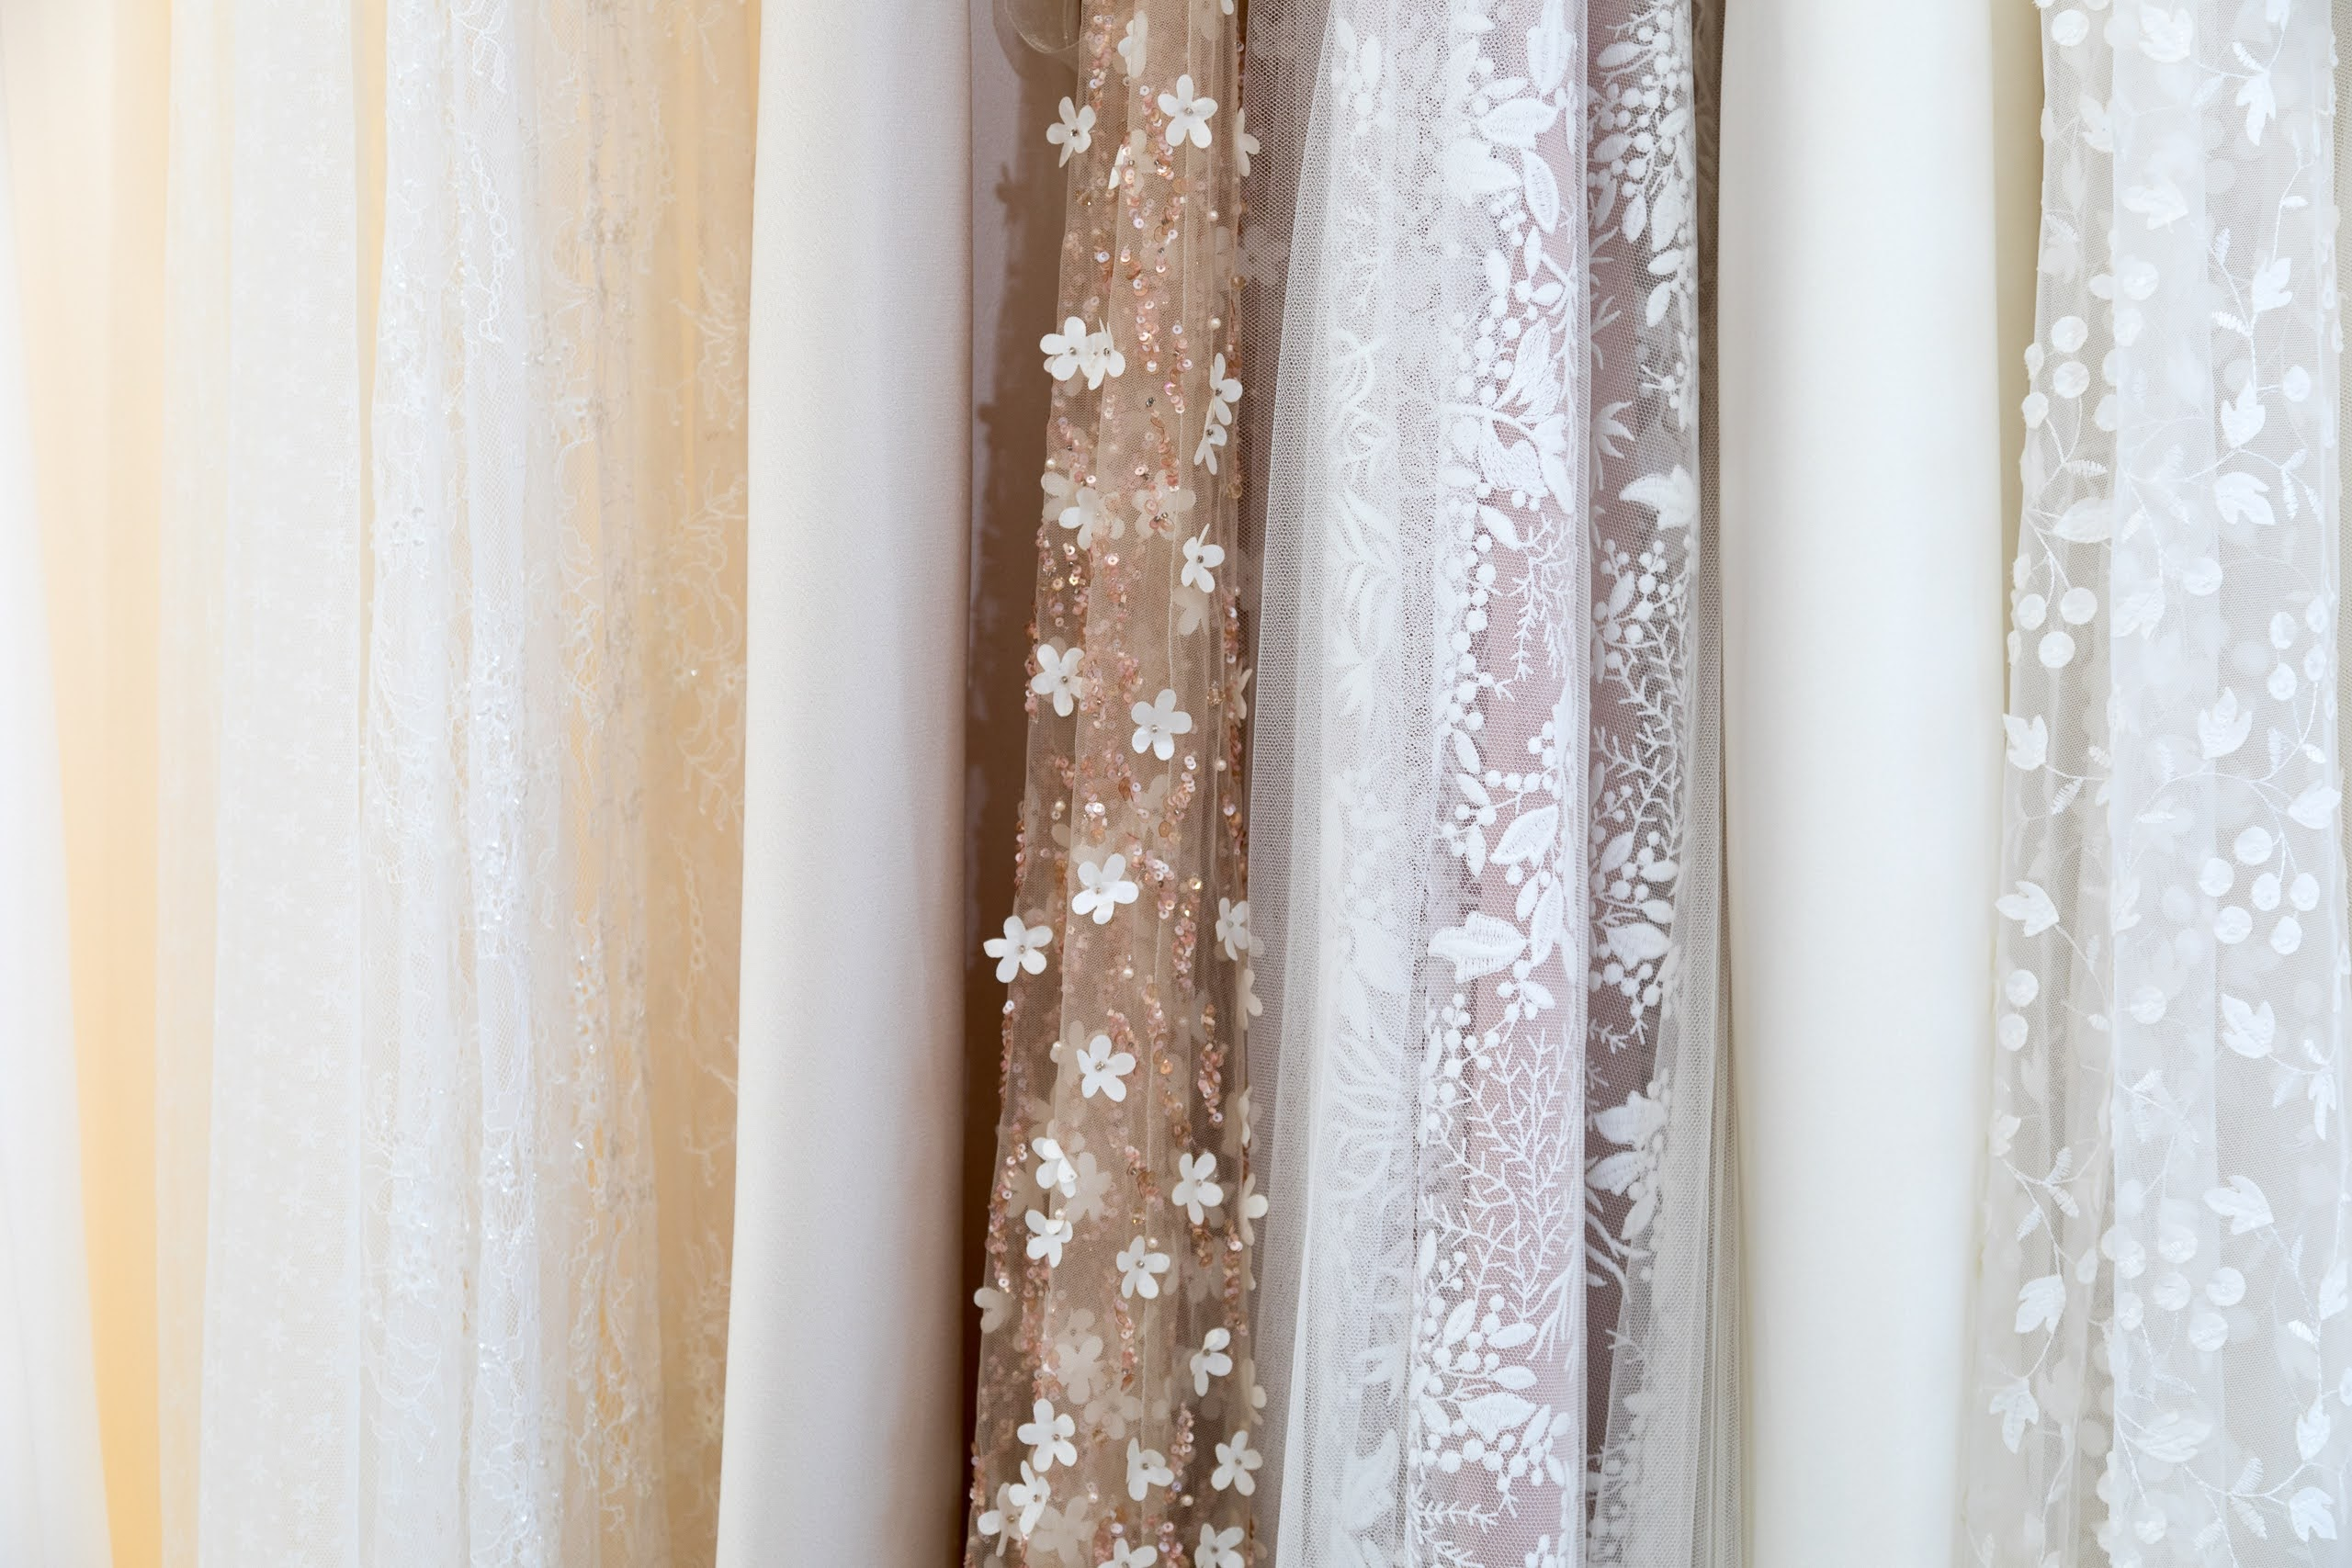 Rare Bridal Studio Dresses